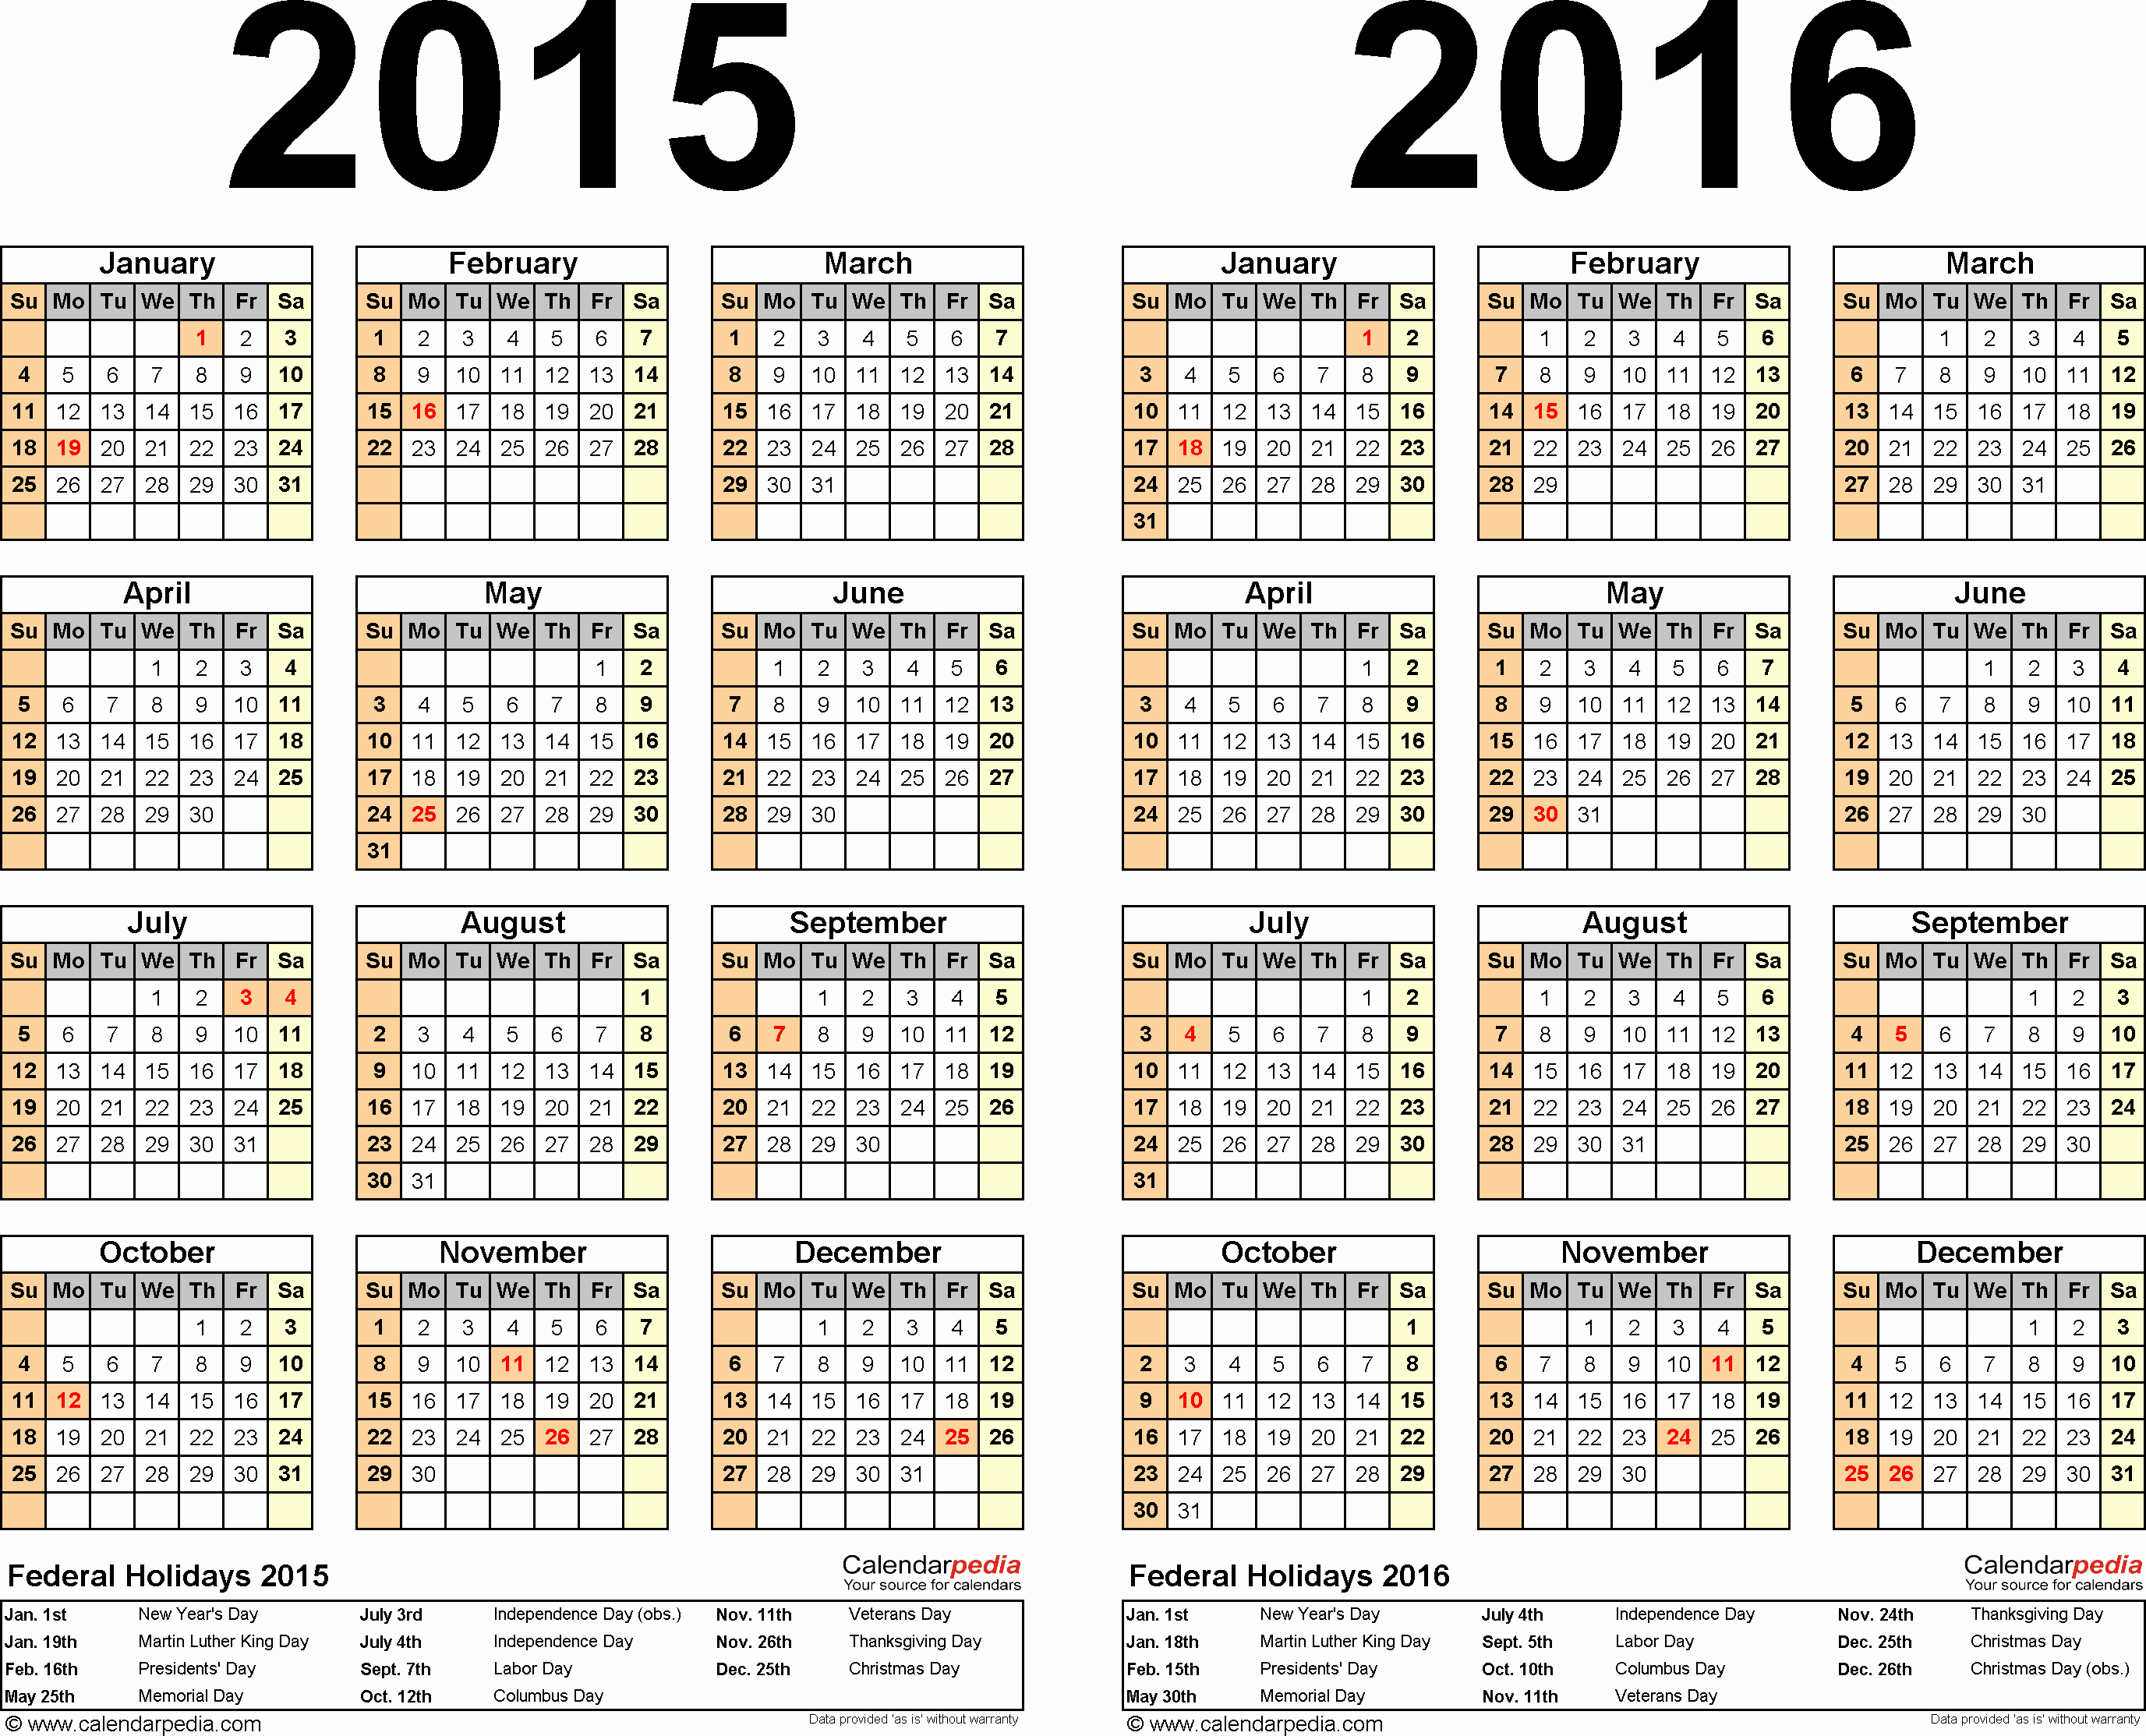 2015 Yearly Calendar Printable Landscape Awesome 2015 2016 Calendar Free Printable Two Year Word Calendars